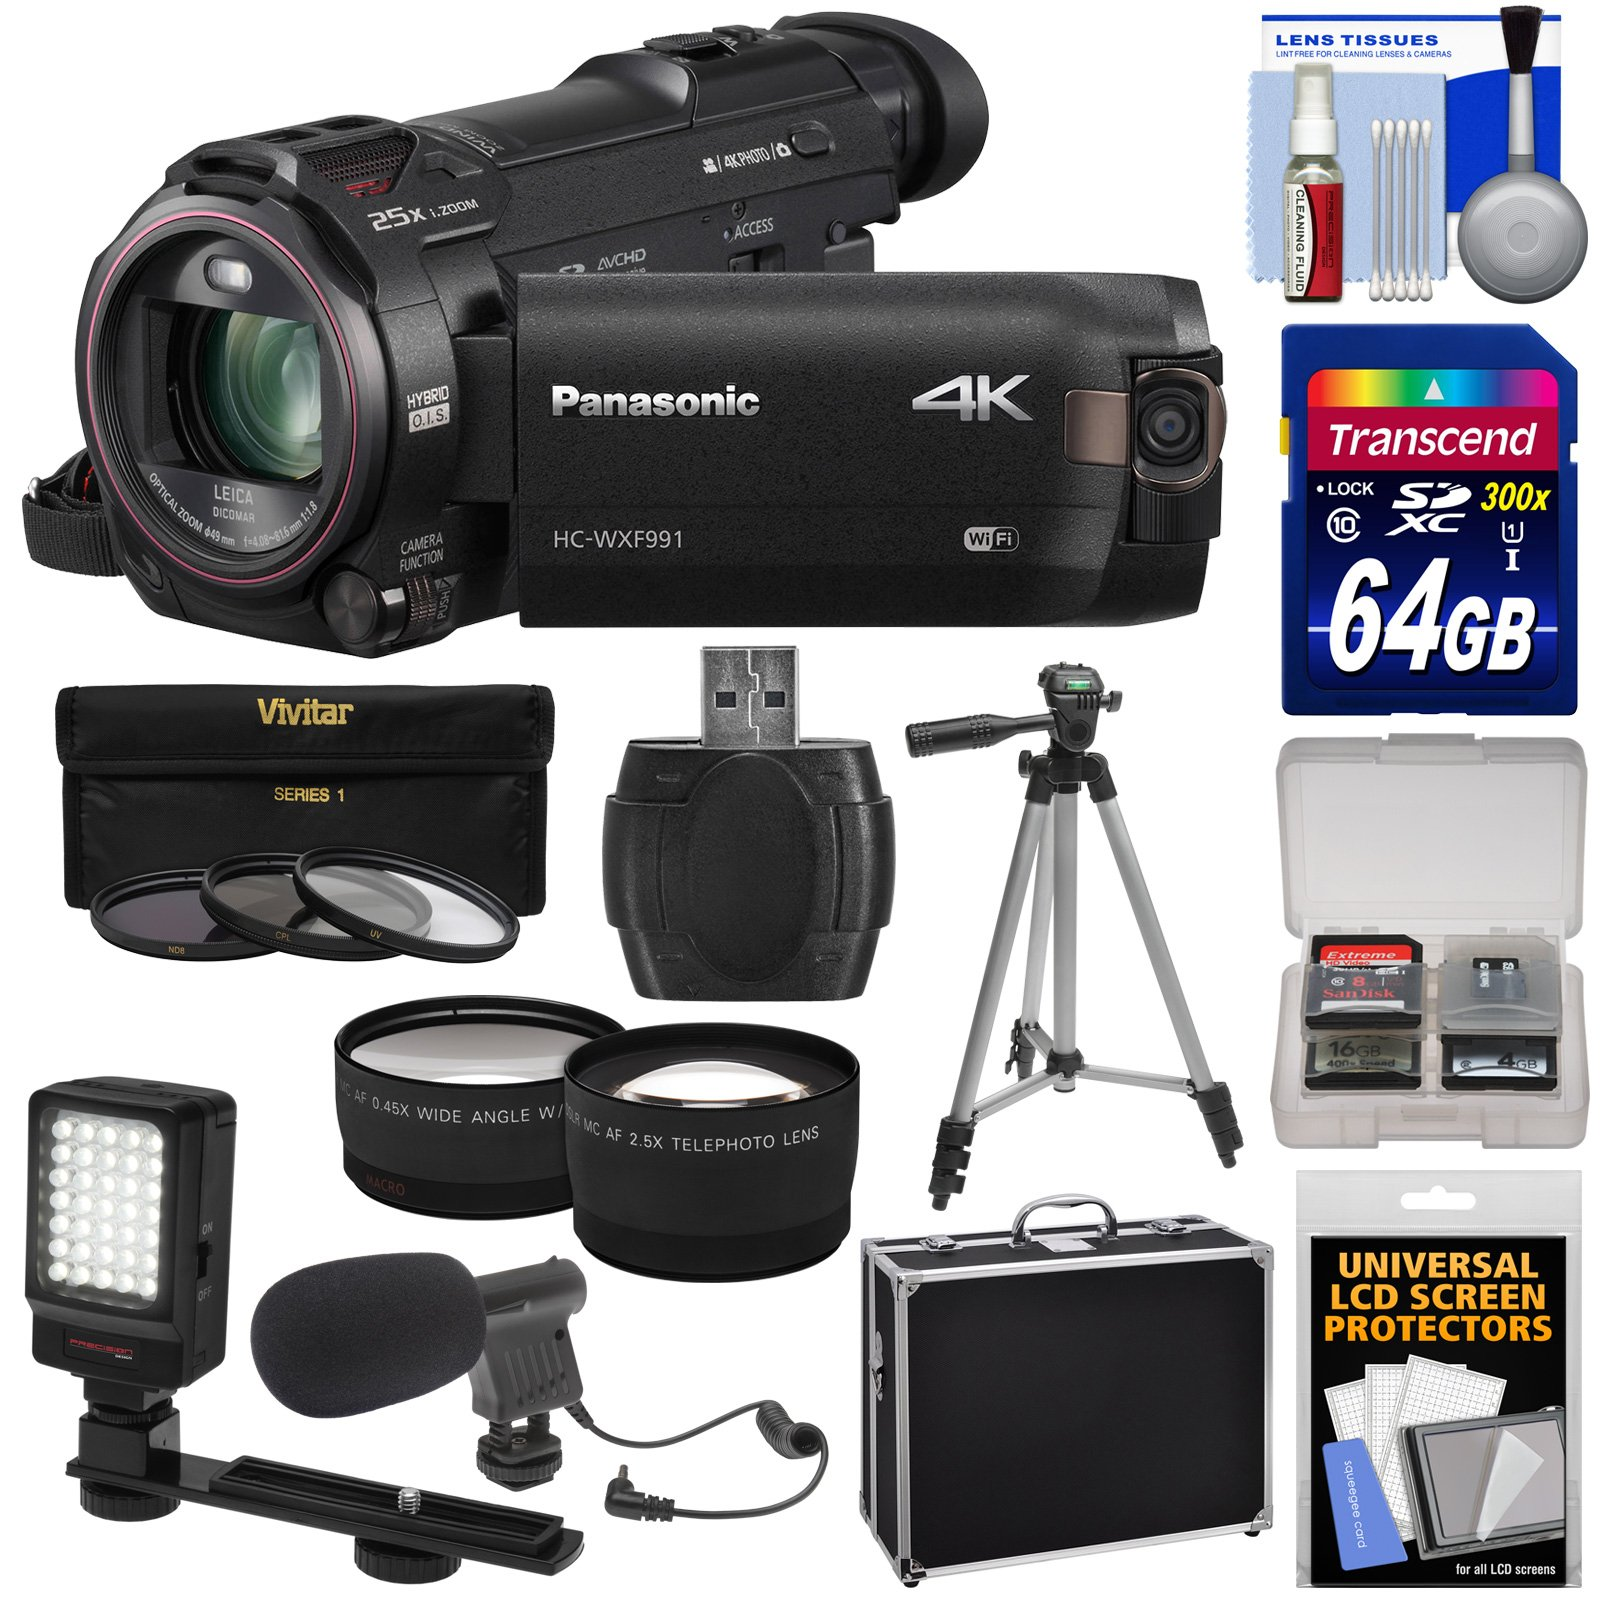 Panasonic HC-WXF991 Wi-Fi 4K Ultra HD Video Camera Camcorder with 64GB Card + Hard Case + Tripod + LED Light + Mic + Filters + Tele/Wide Lens Kit by Panasonic